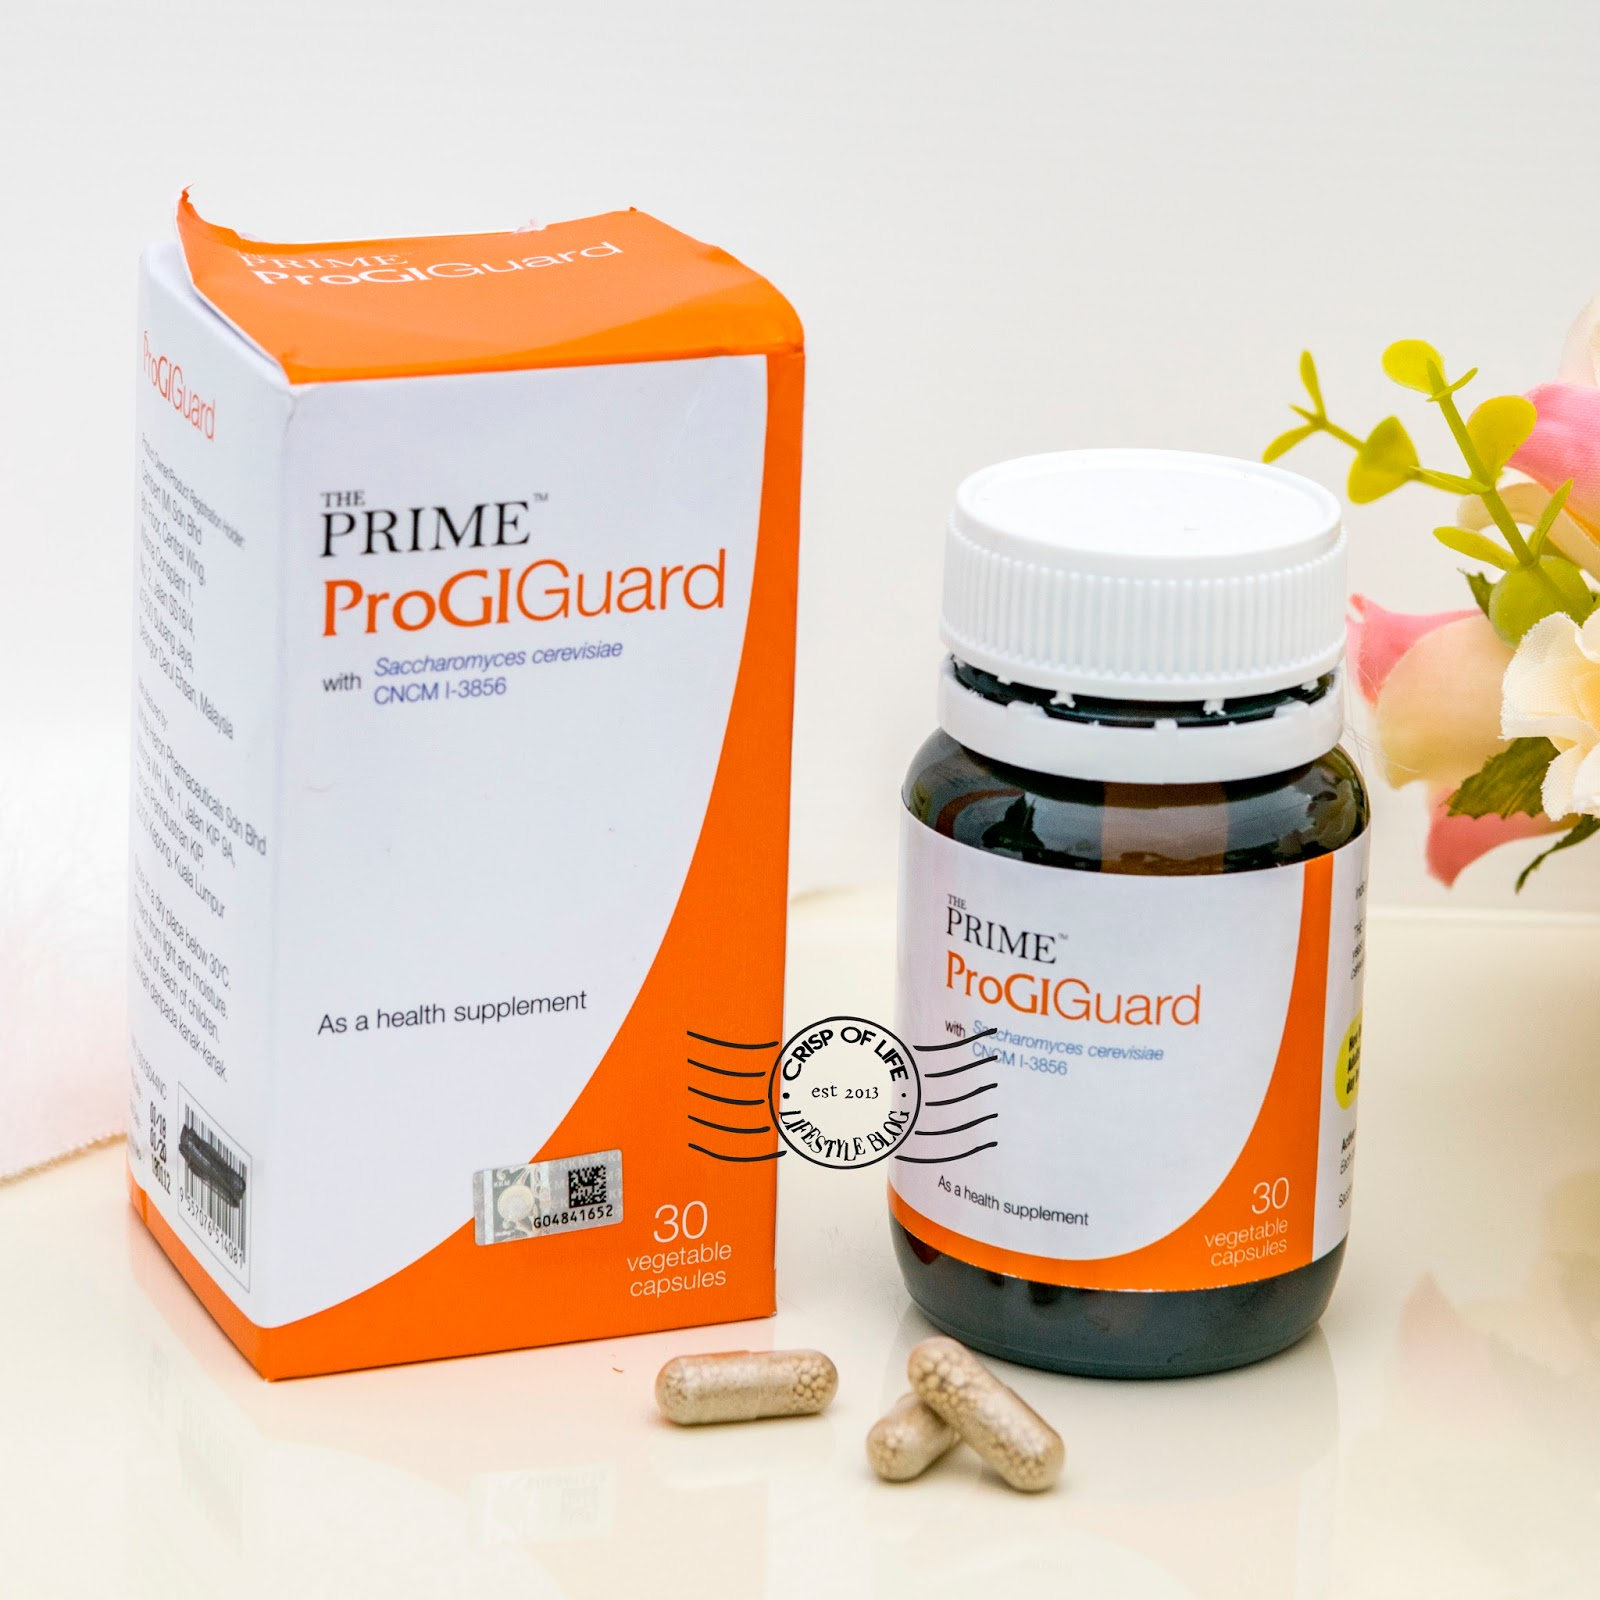 Prime ProGIGuard - The New Yeast Probiotic For Your Sensitive Stomach (Irritable Bowel Syndrome)